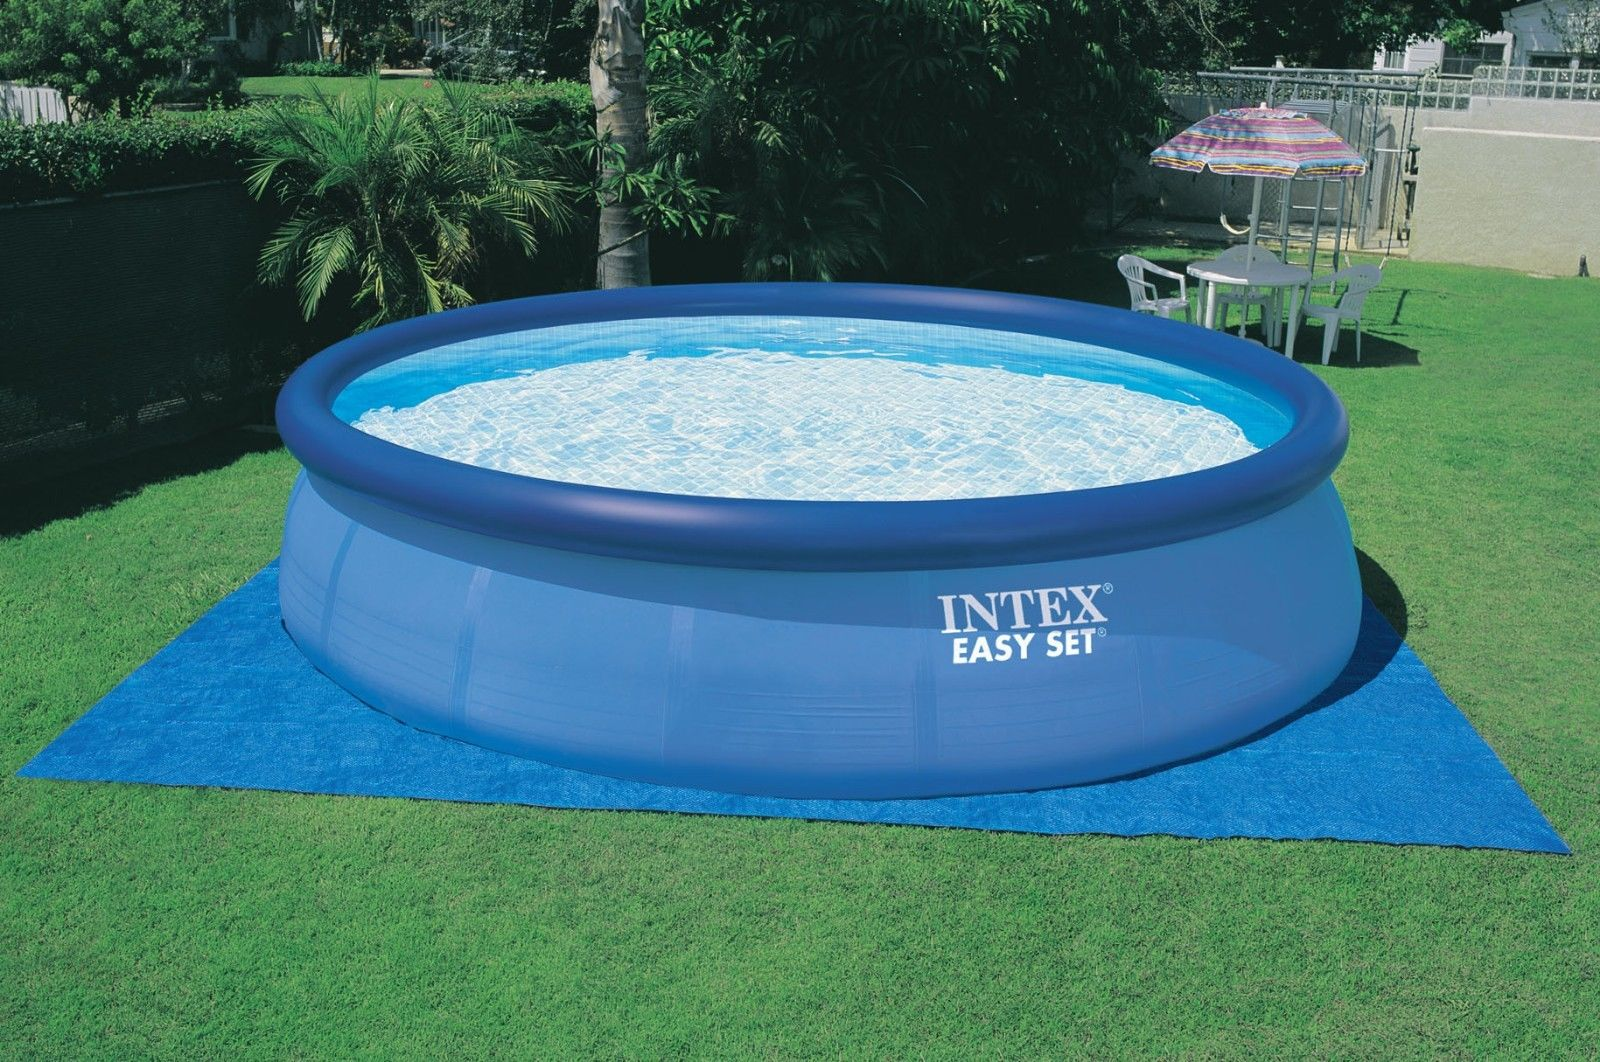 intex 15 x 42 easy set above ground swimming pool package 1000 gph pump 28165eh - Intex Pools